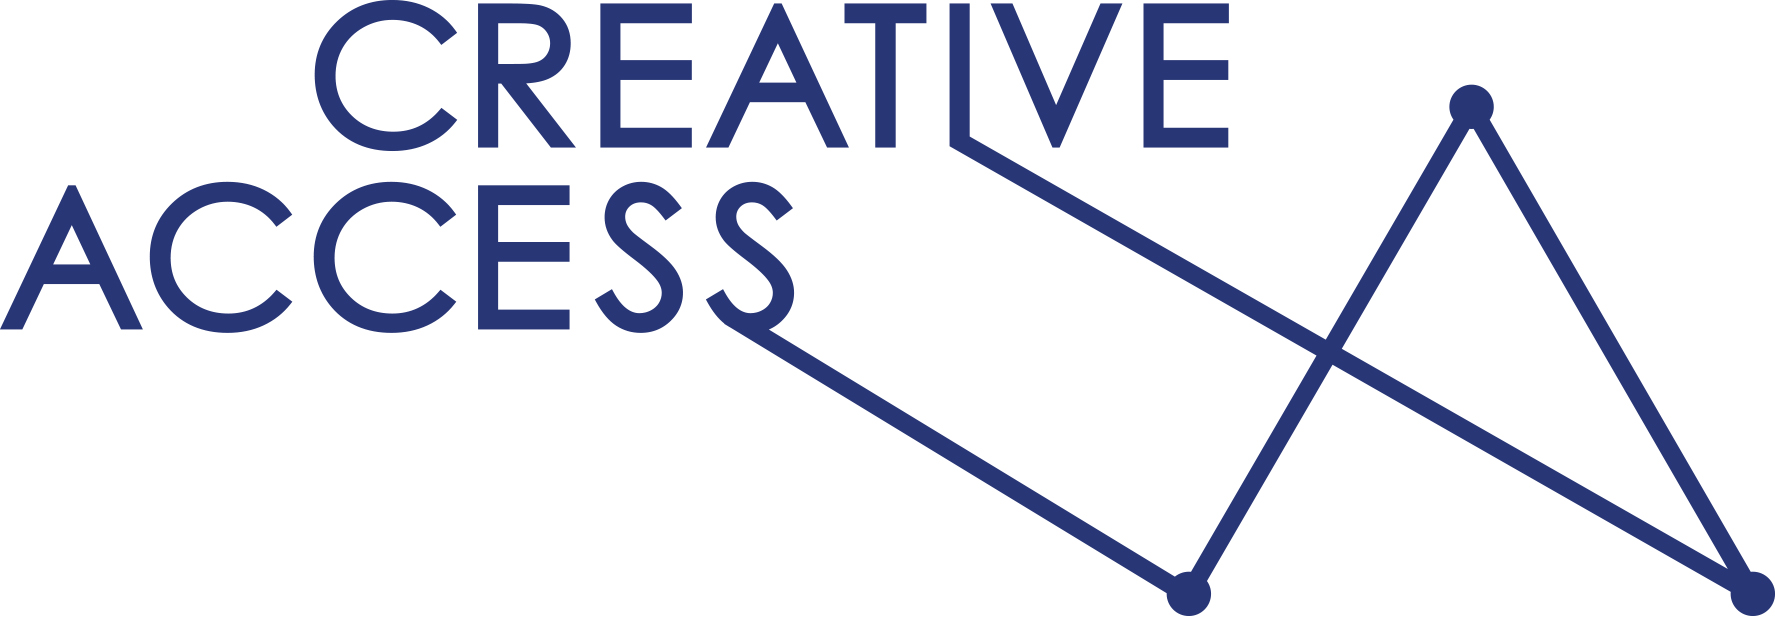 Creative Access logo